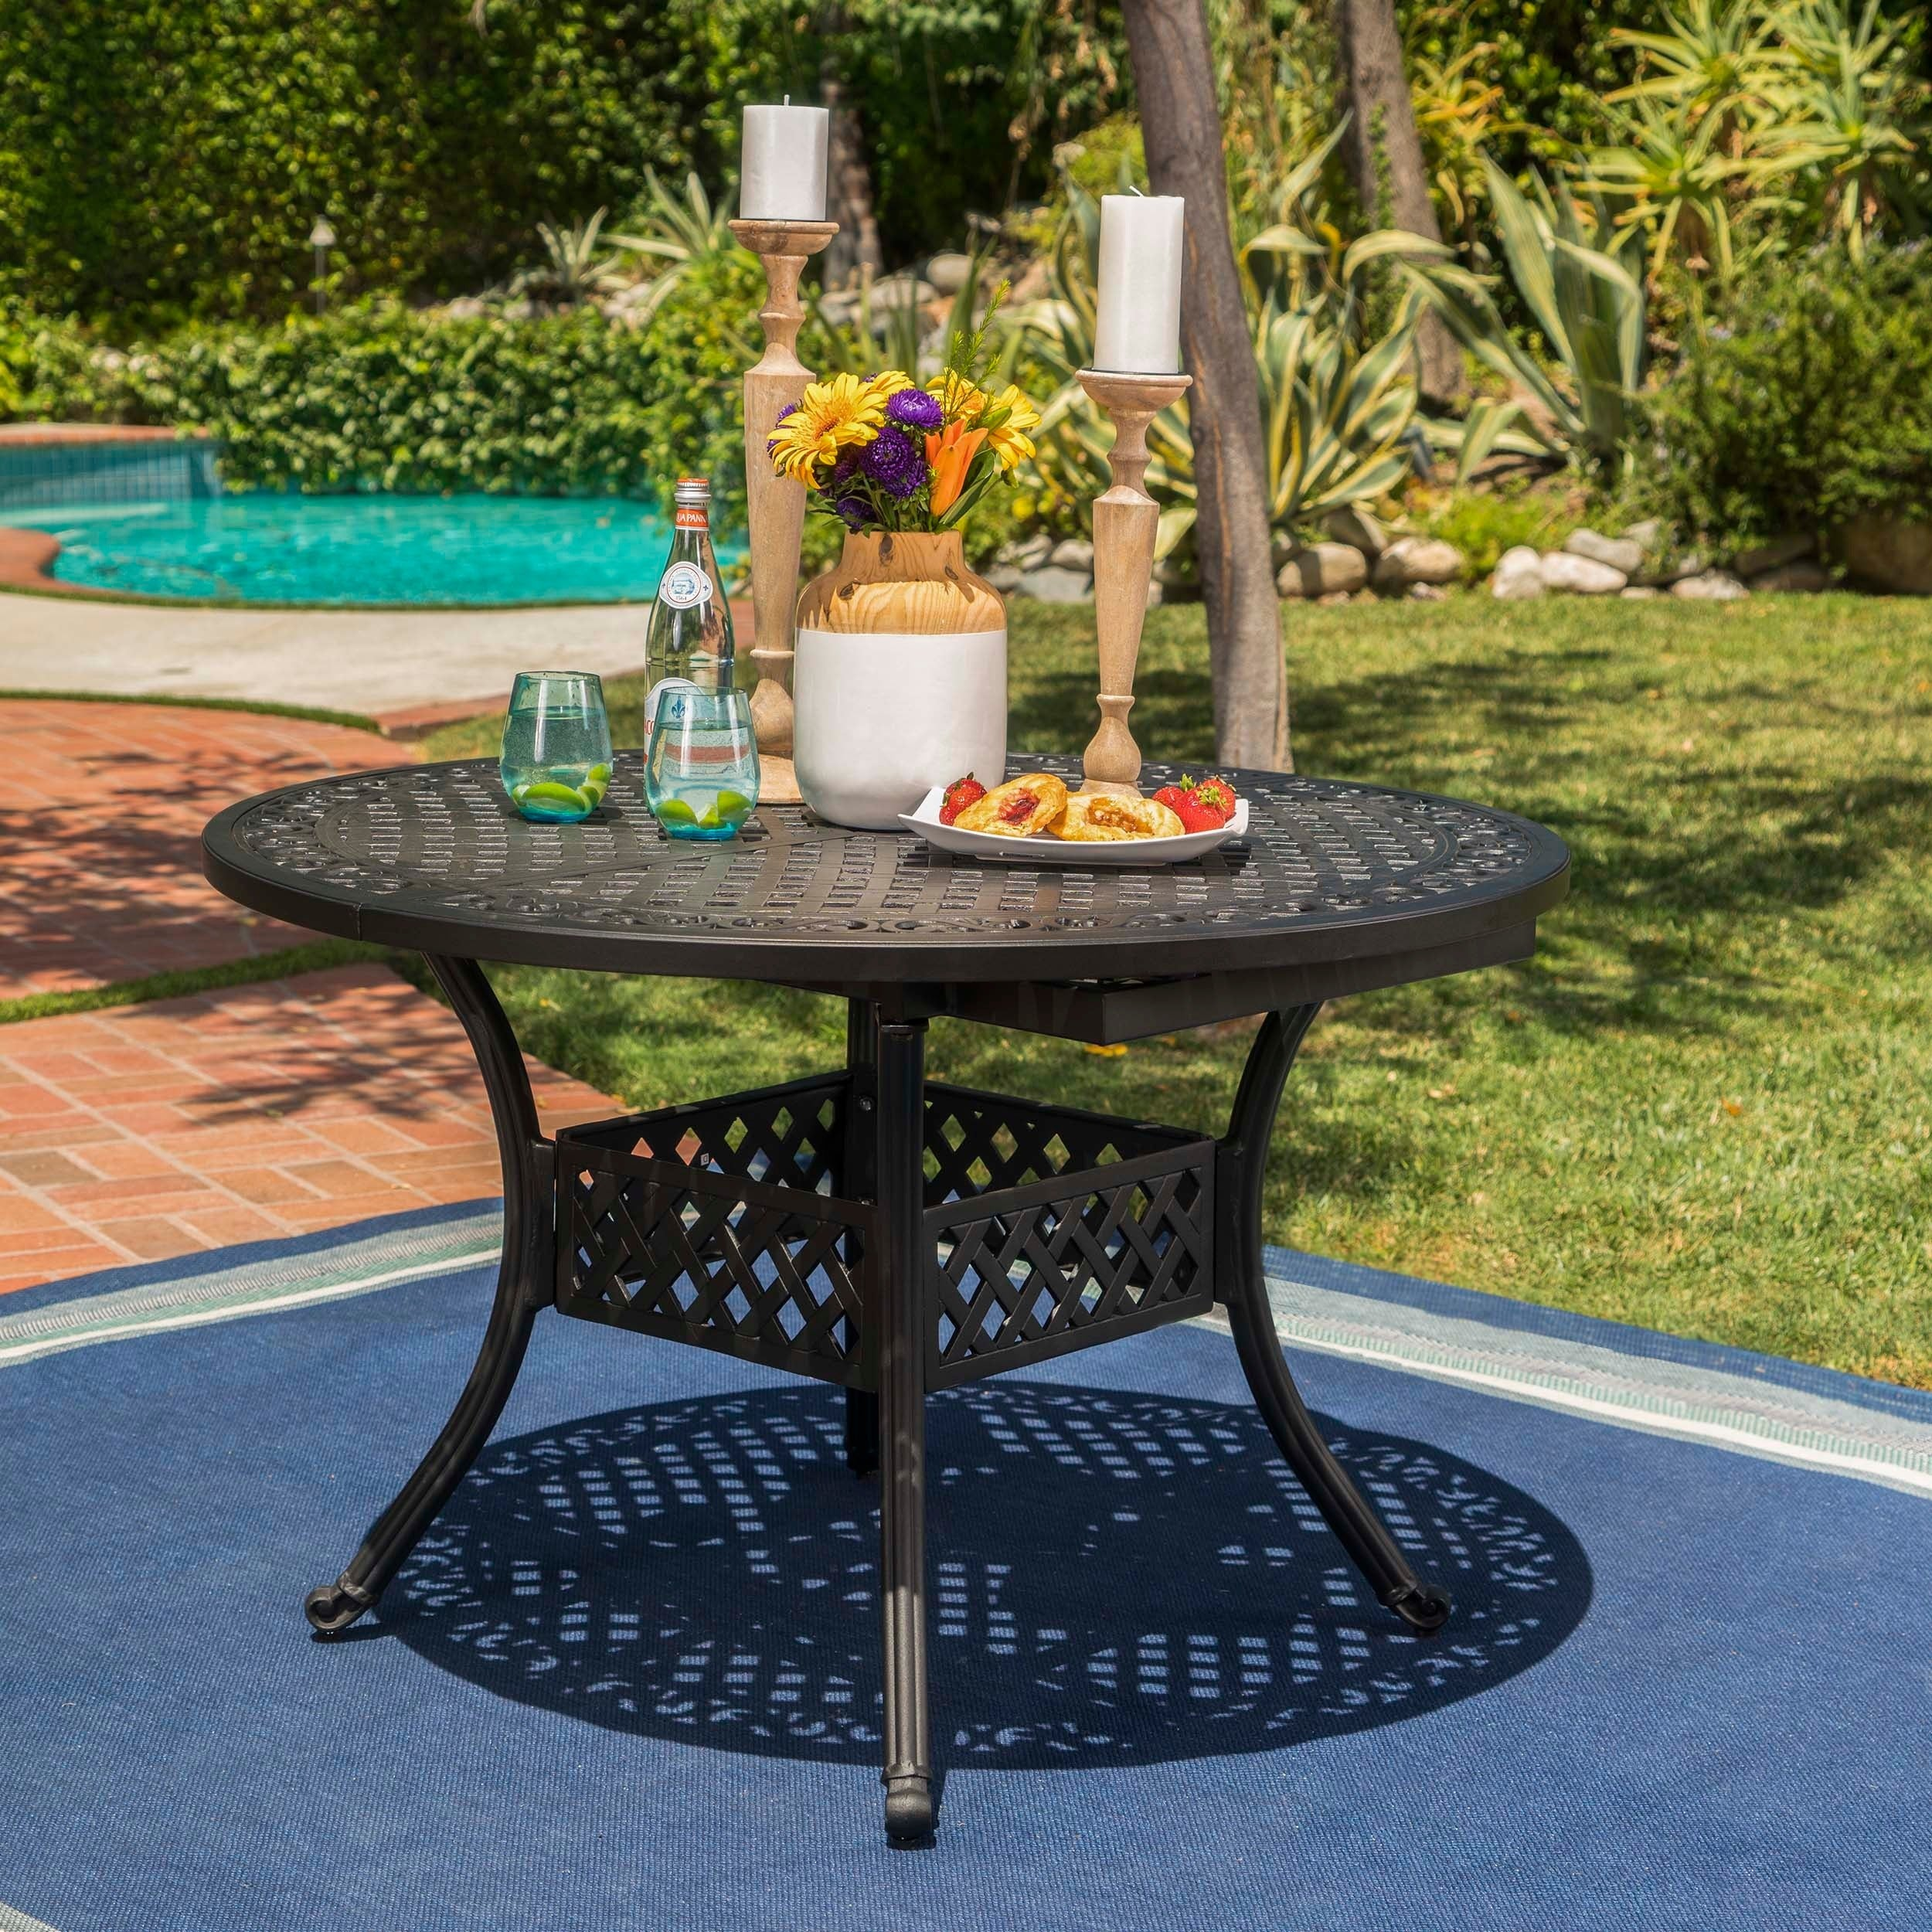 dining charcoal garden floral outdoor com piece tables styles blossom oval table patio amazon home dp